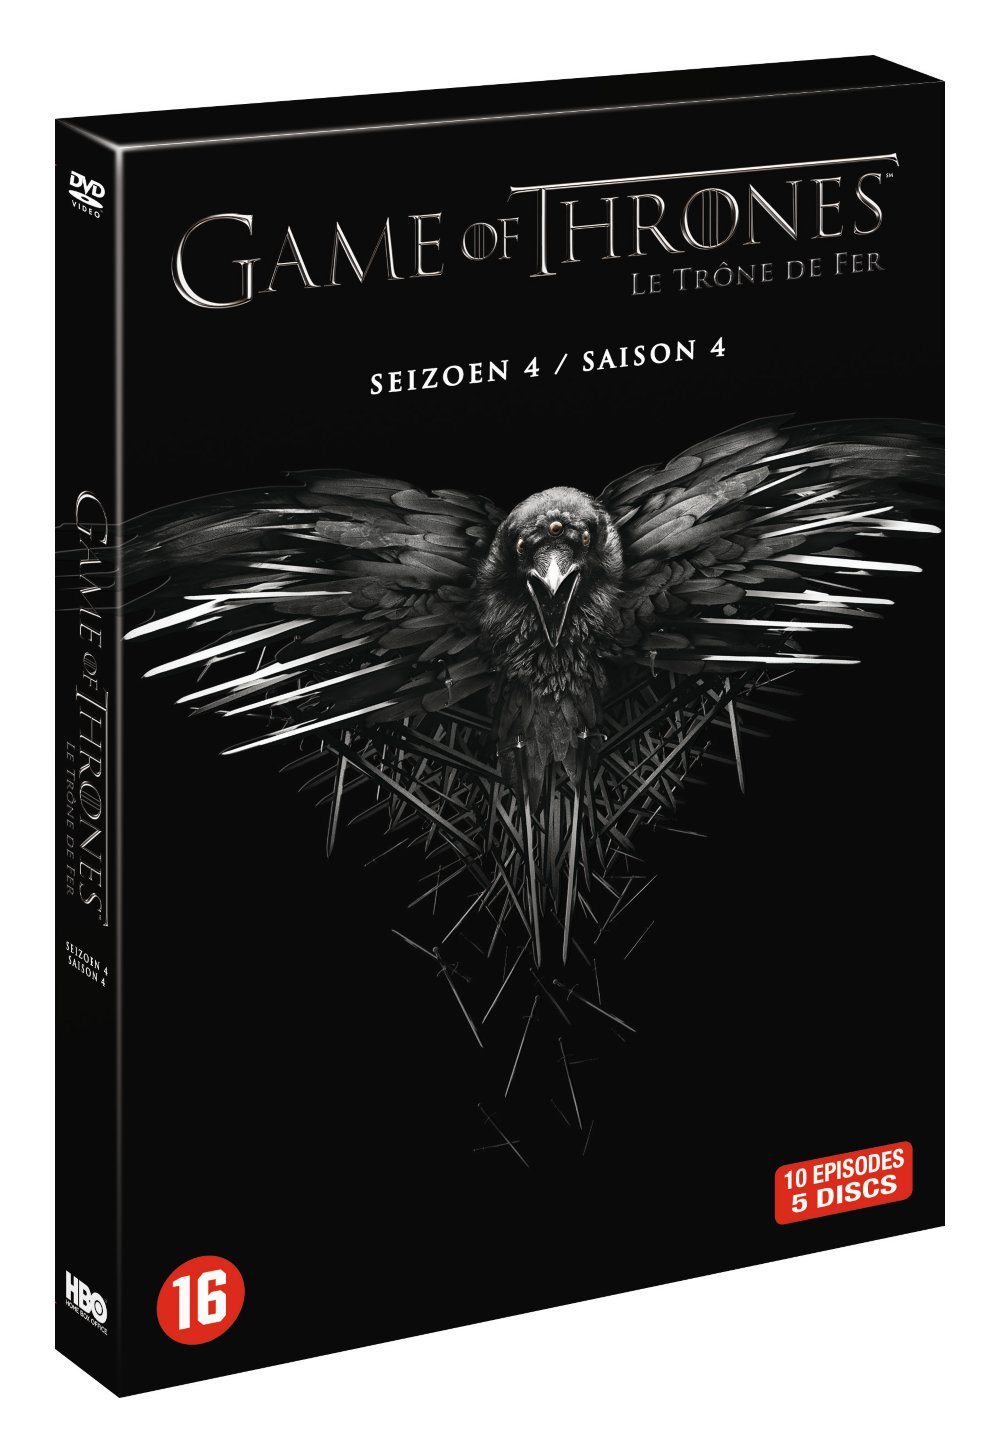 Game of thrones seizoen 4 DVD